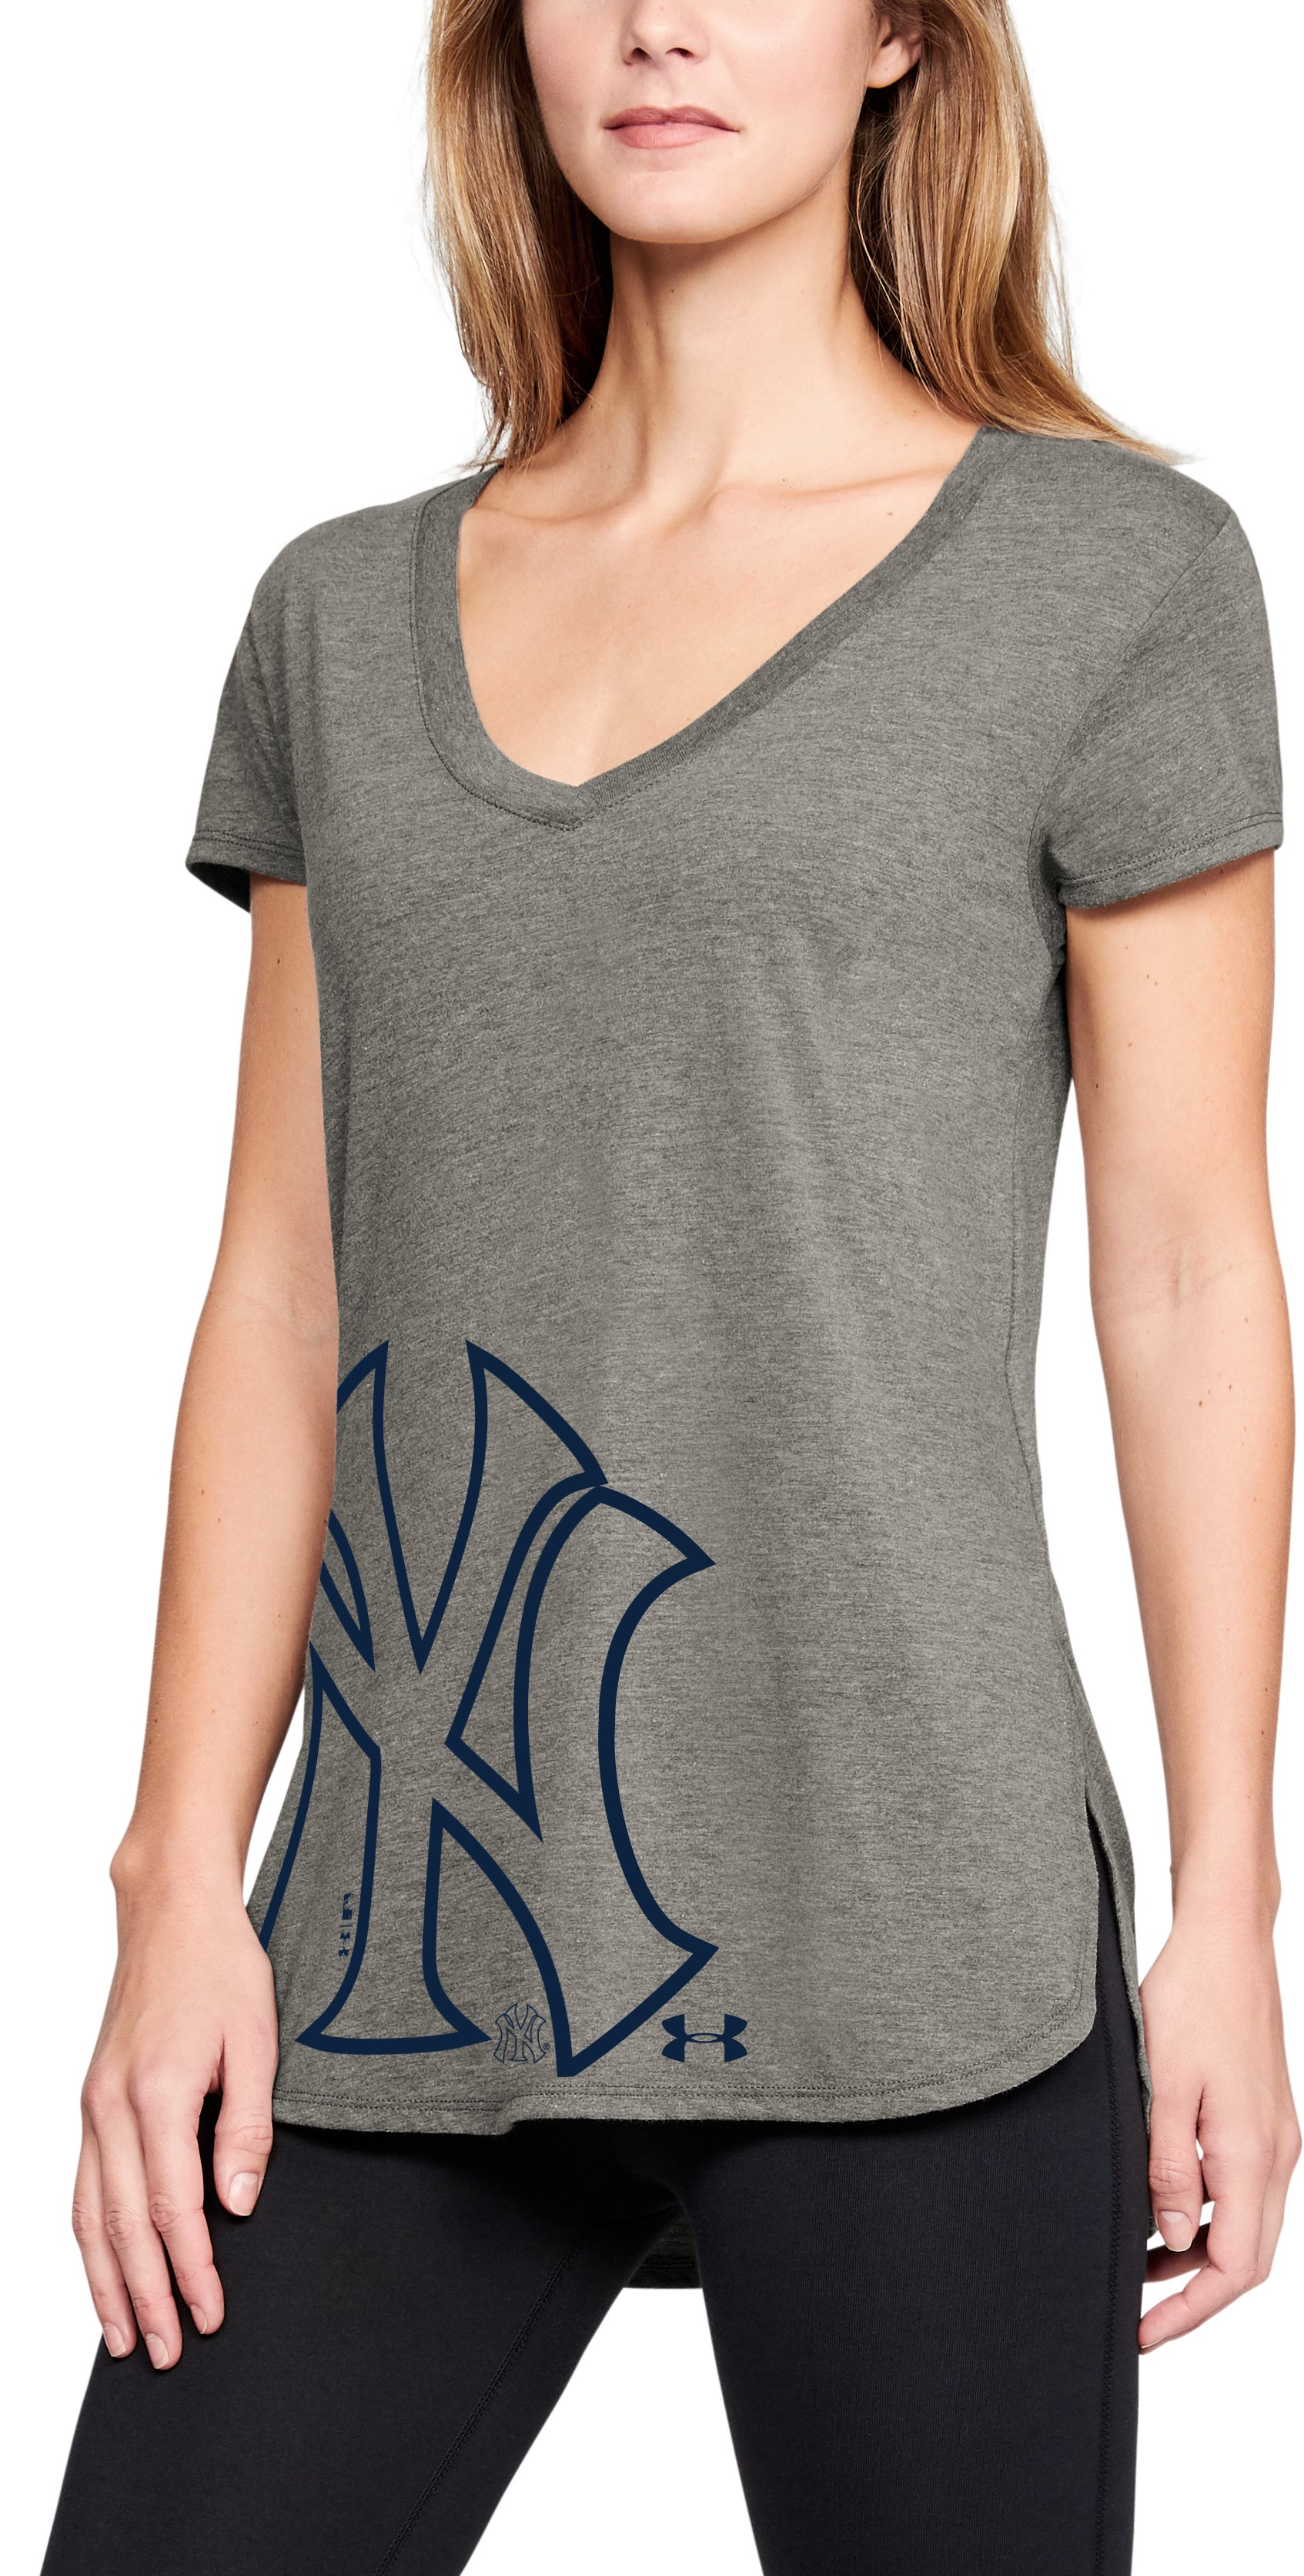 Women's MLB UA Tri-Blend Offset Short Sleeve, MLB_NYY_Steel Heather, zoomed